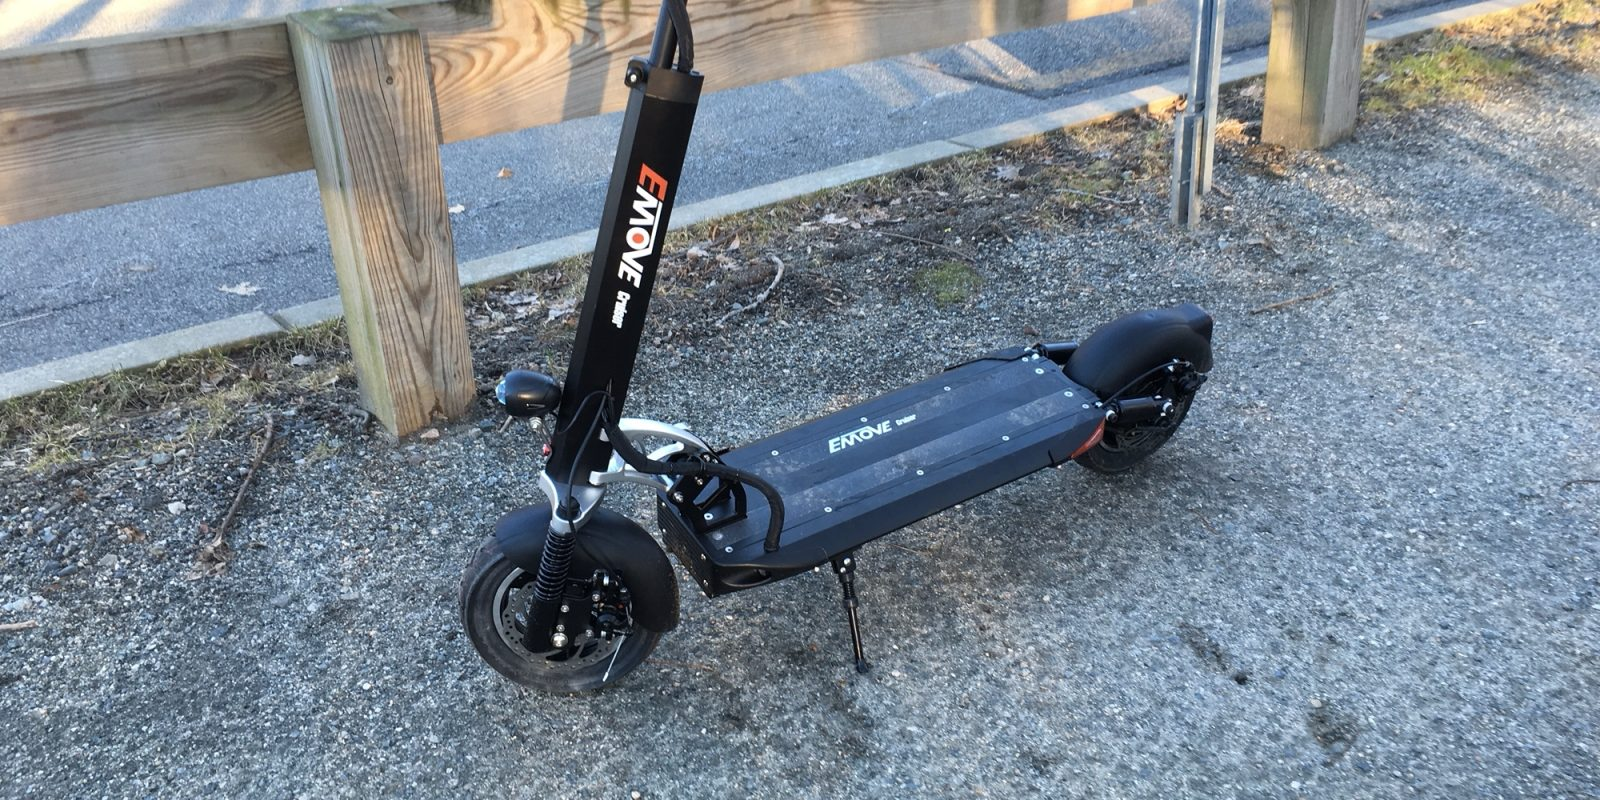 EMove electric scooter review: 50 miles of range and 25 MPH